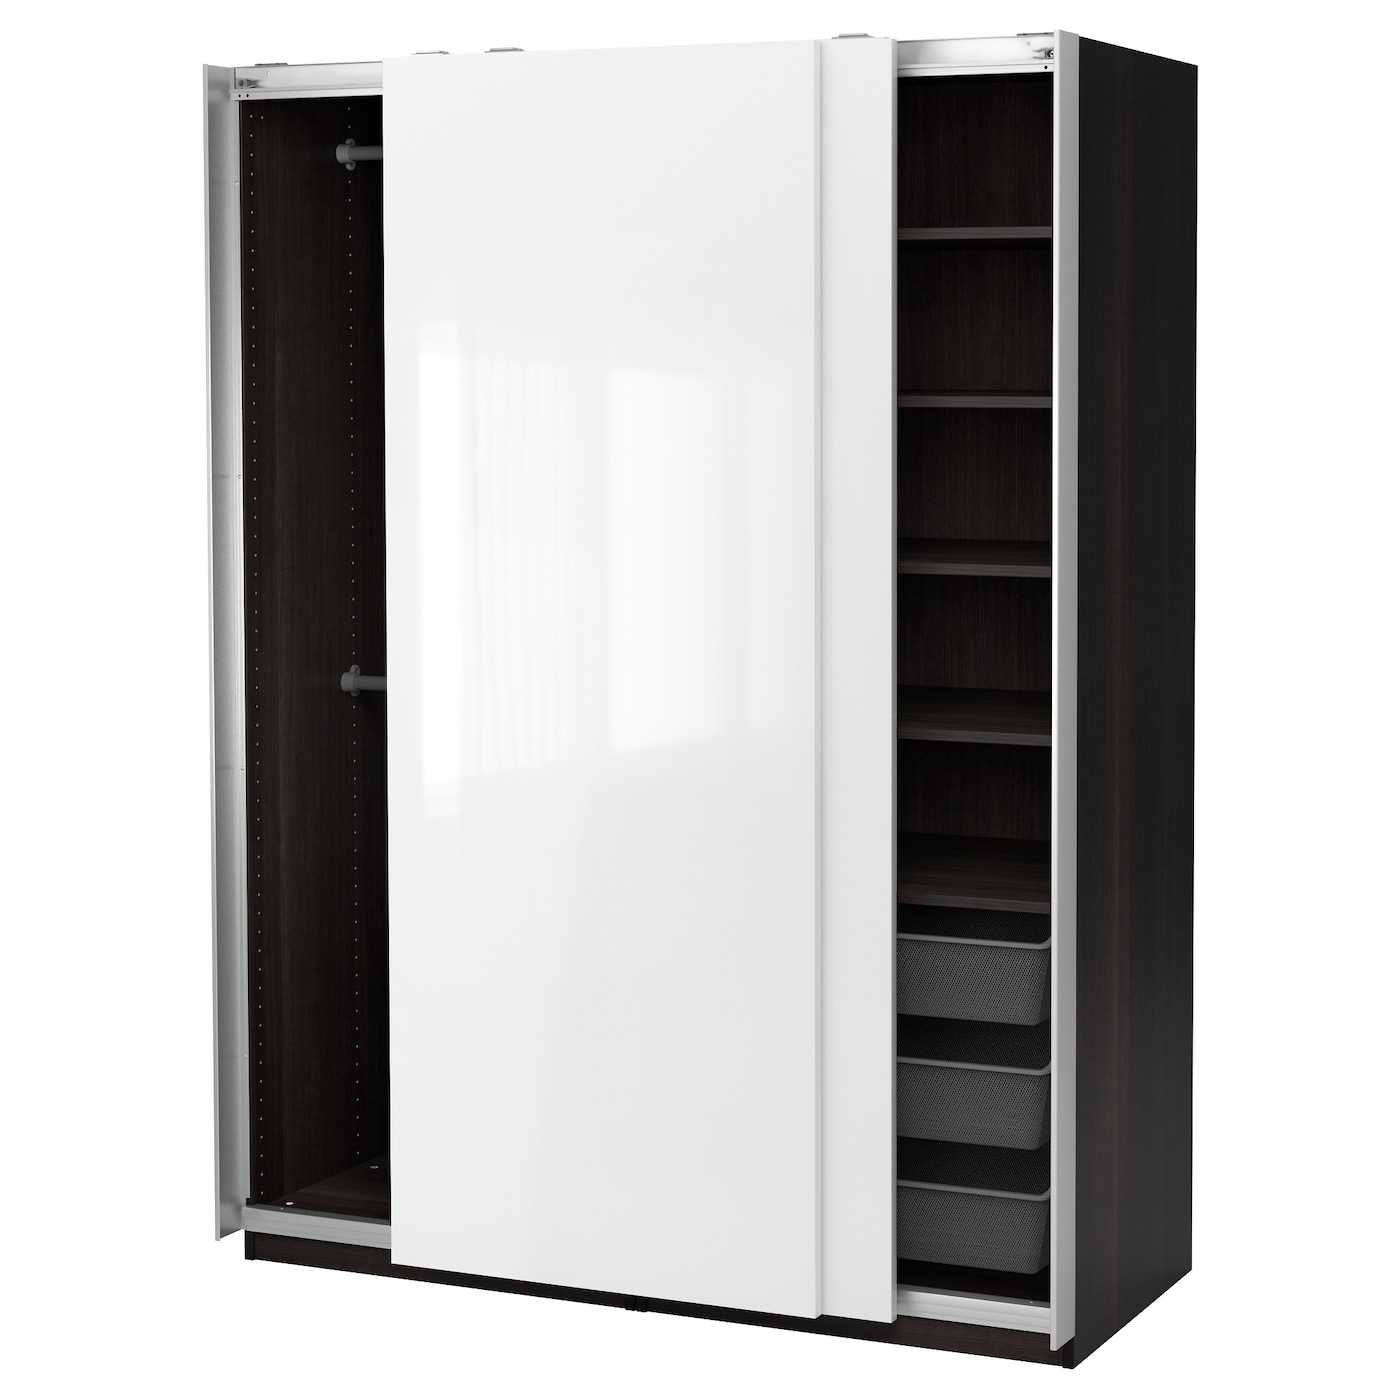 pax wardrobe black brown hasvik high gloss white 150x66x201 cm ikea. Black Bedroom Furniture Sets. Home Design Ideas